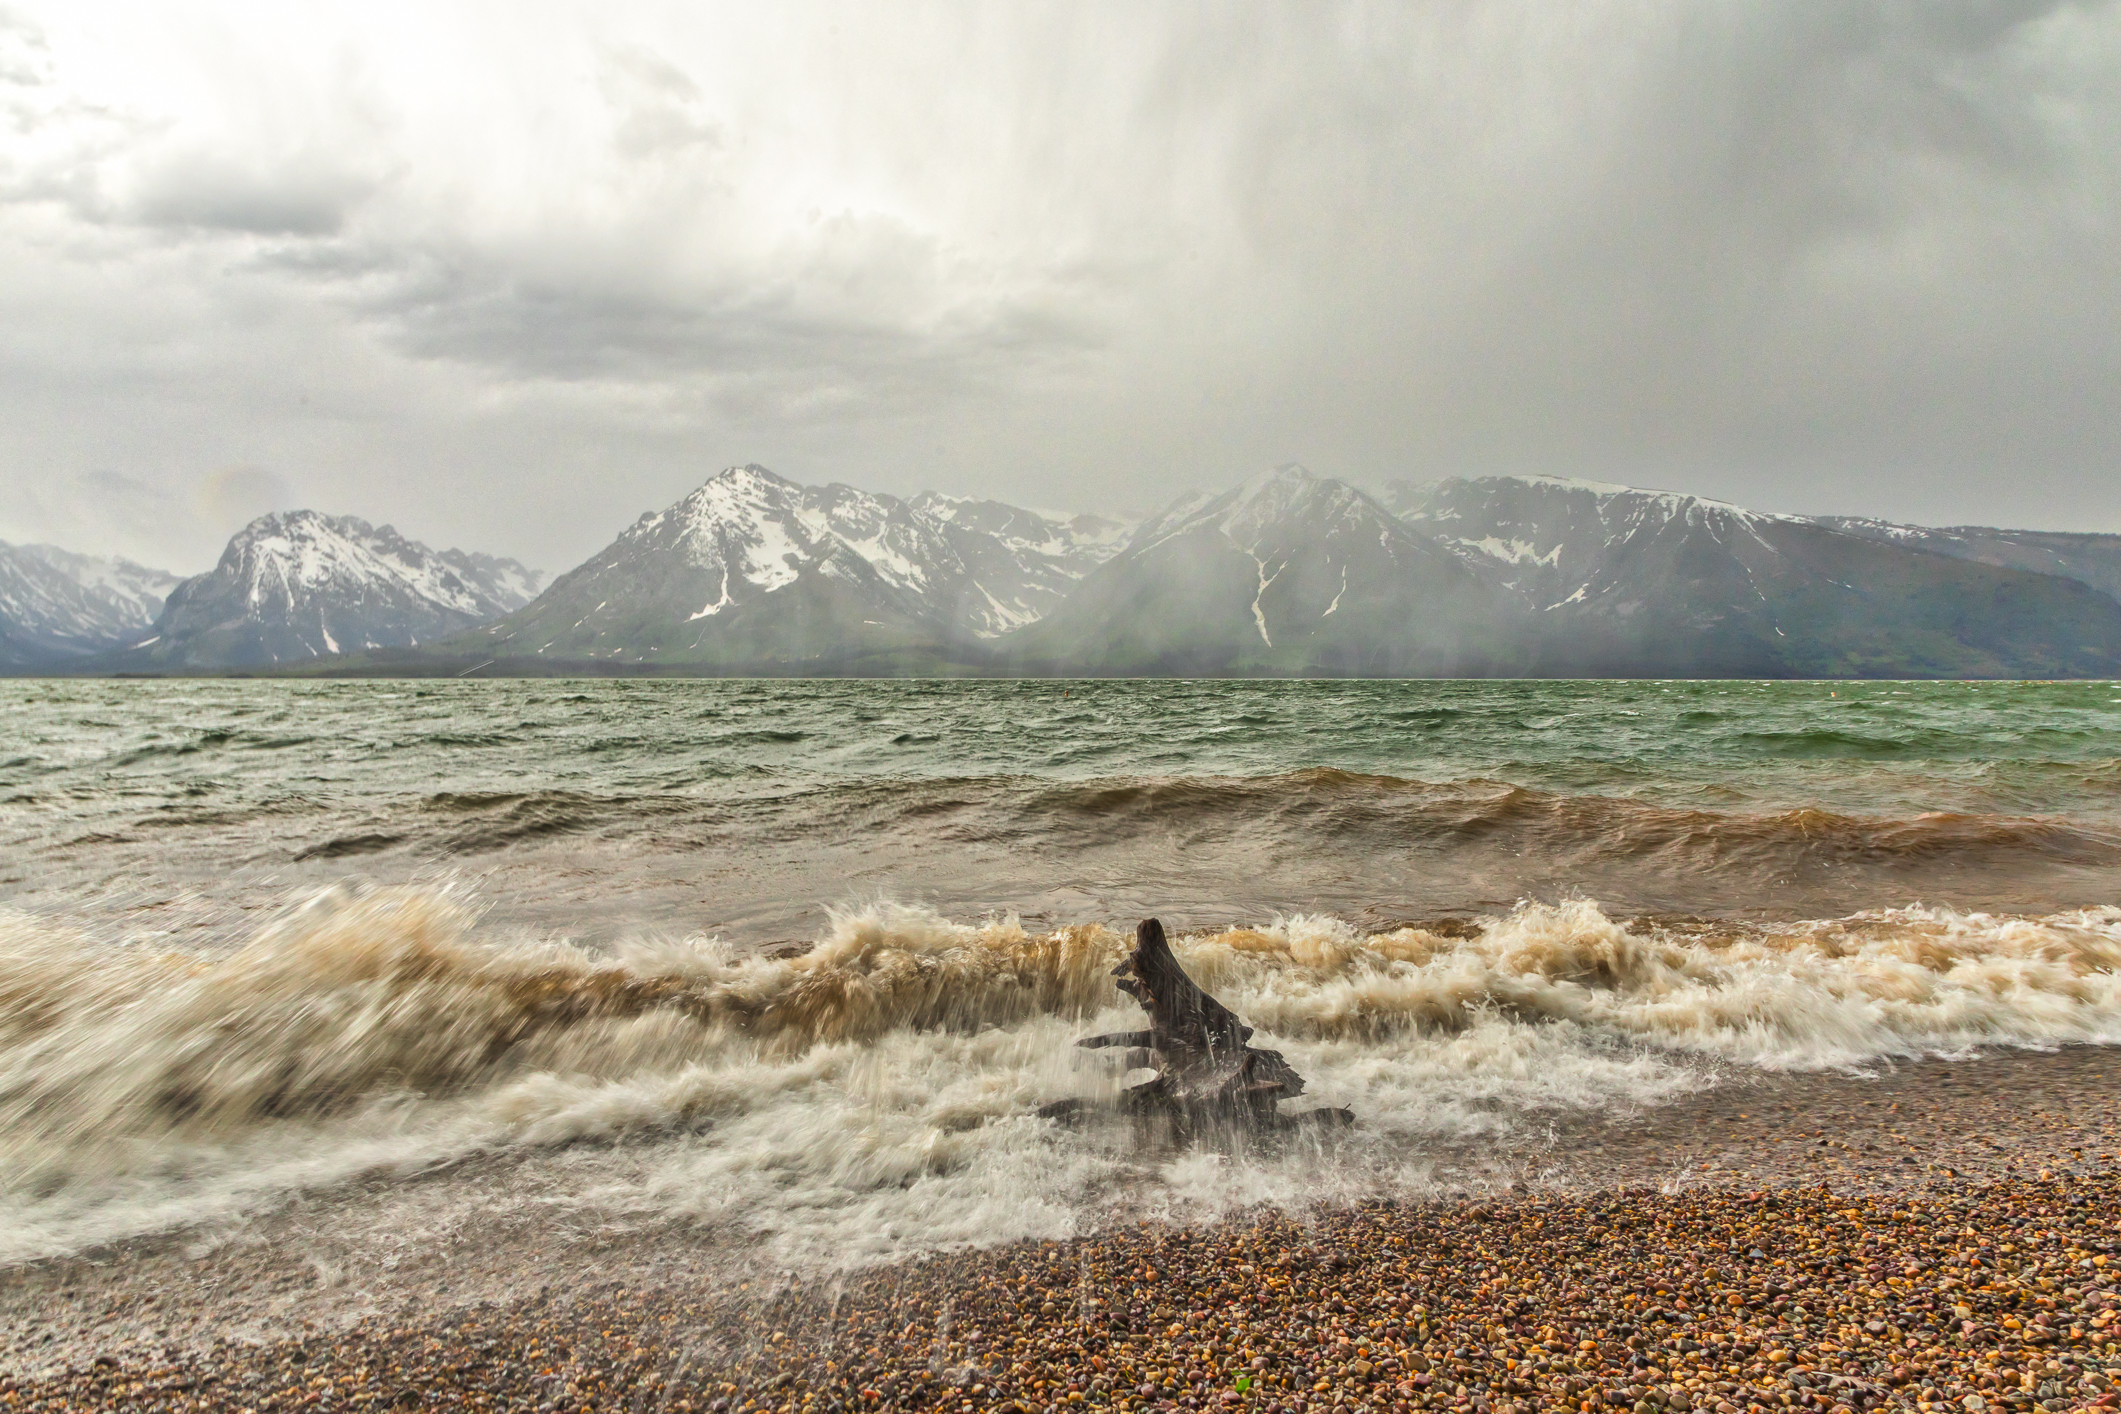 Colter Bay, Image # 3502